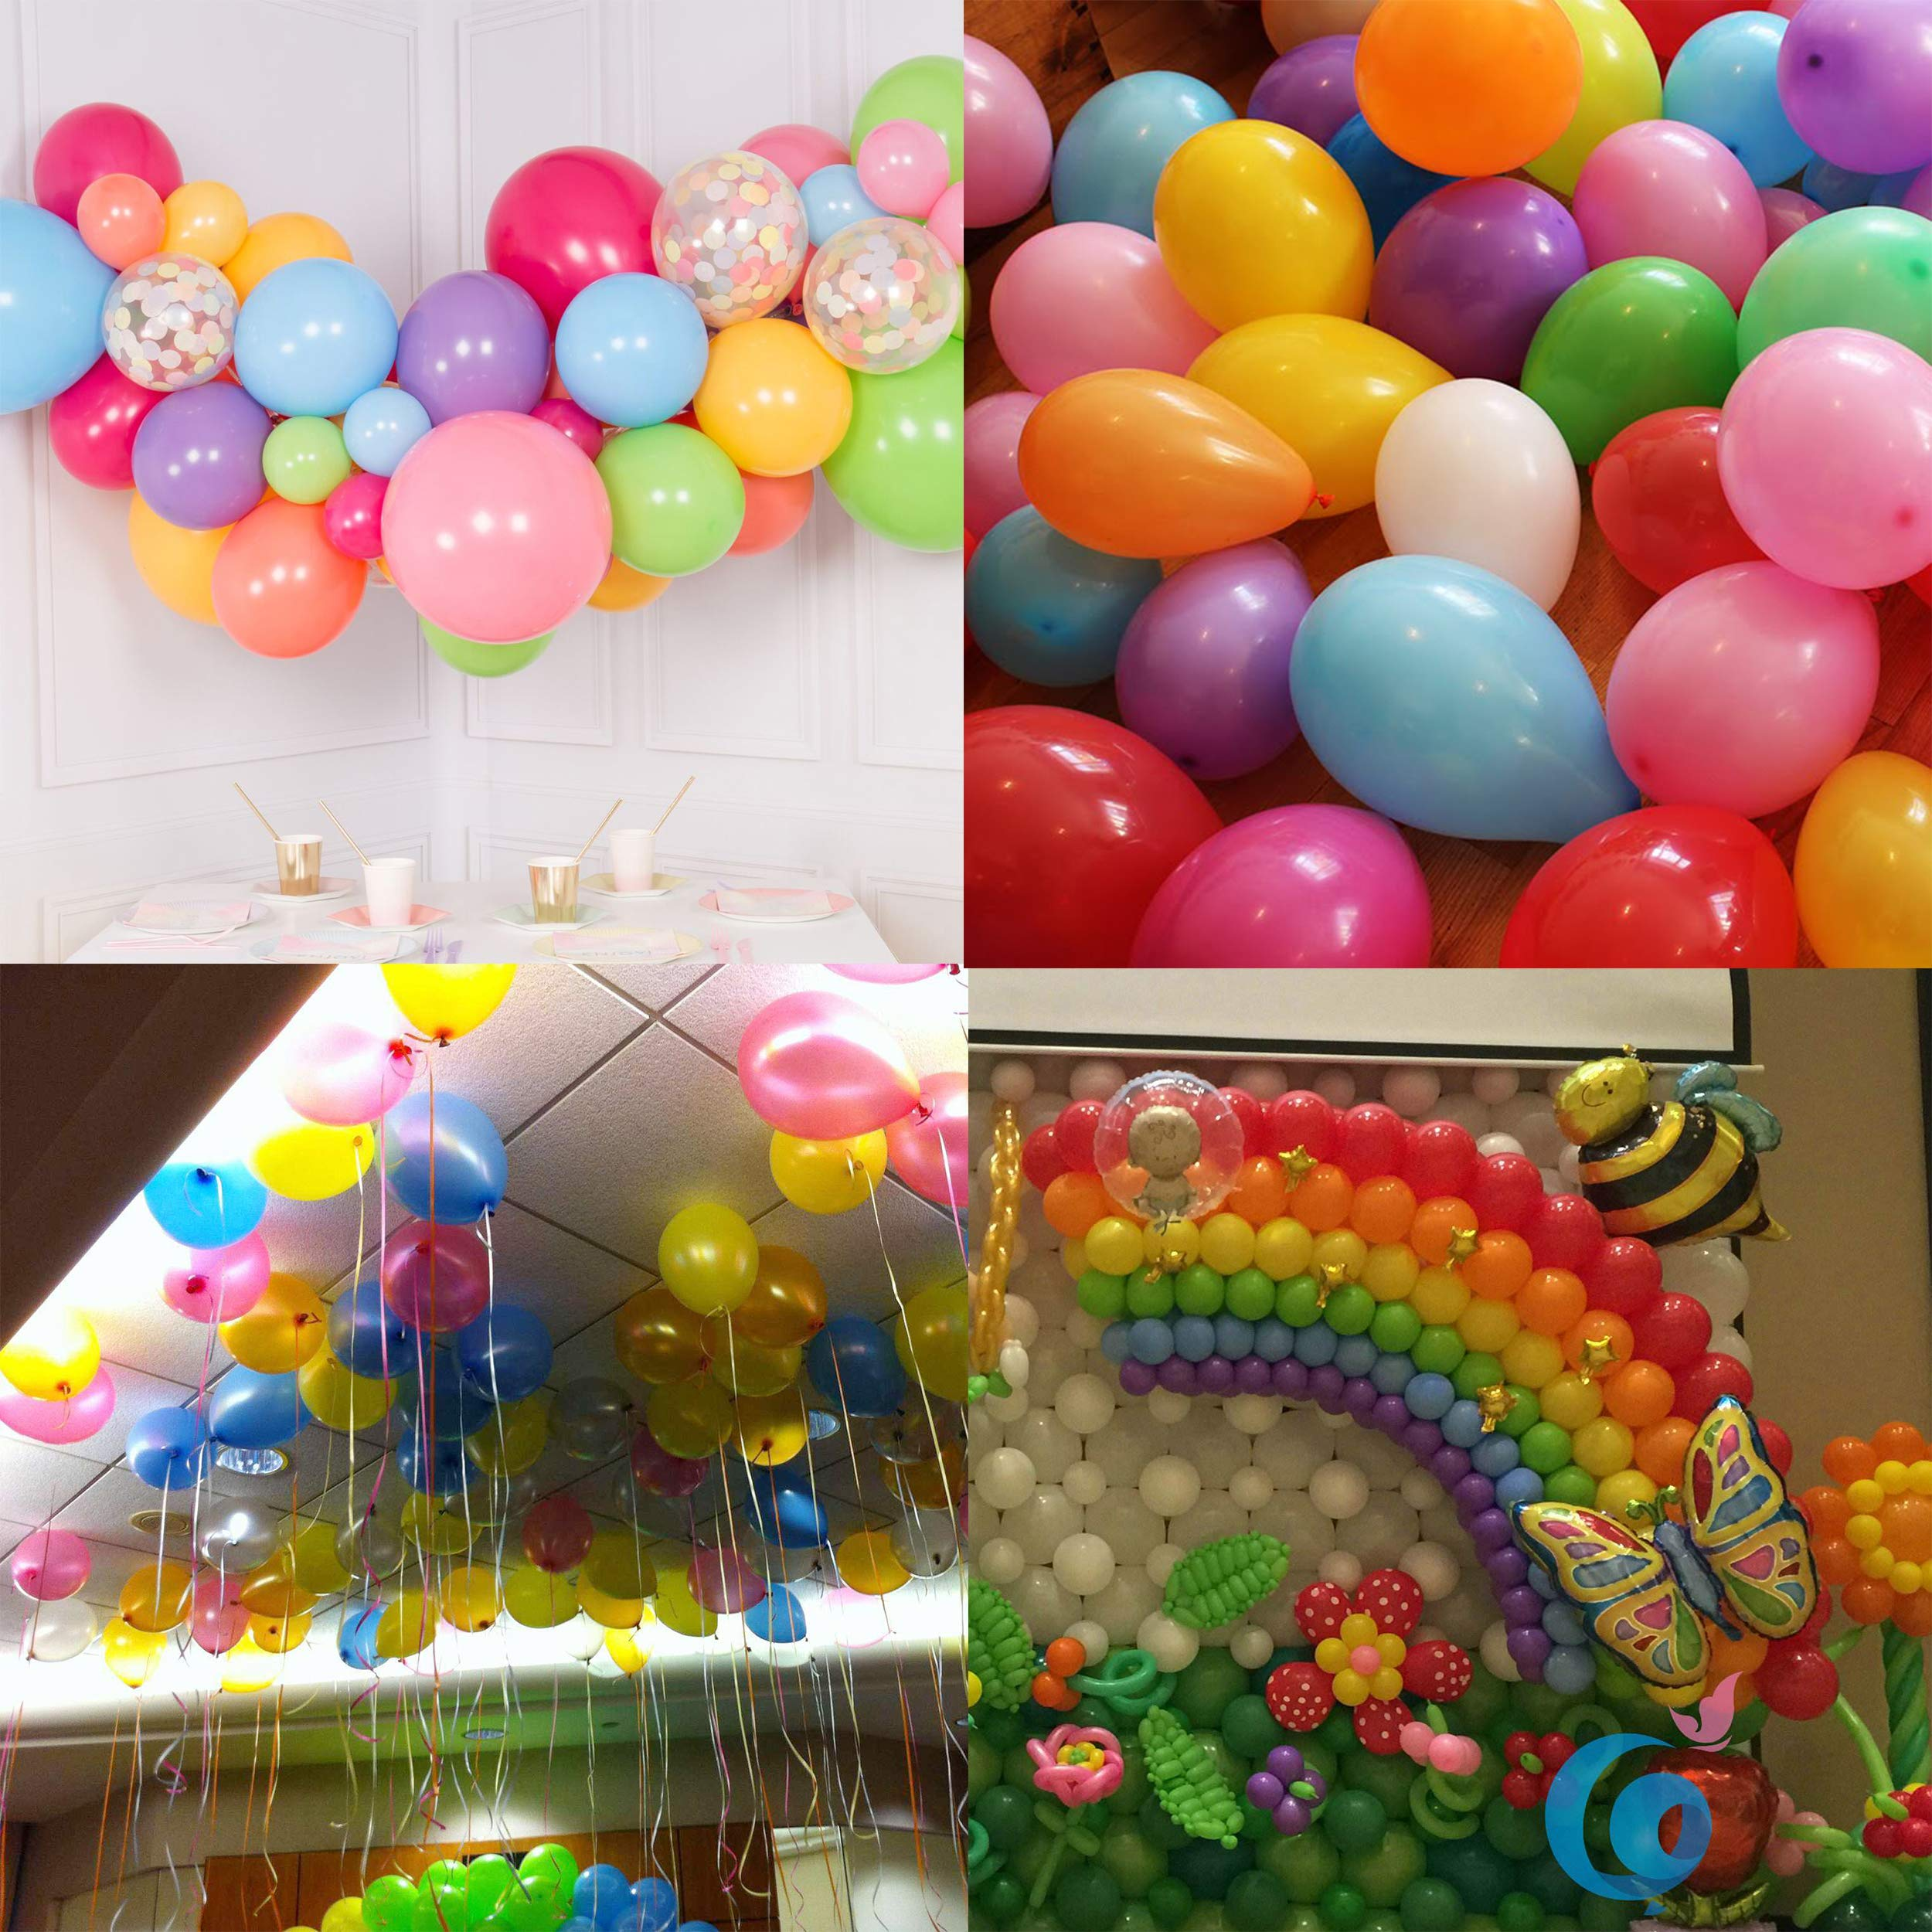 ChristmasEXP 180 Pcs Assorted Colors Rainbow Balloons, 12 inch Party Balloons, High Quality Latex Balloons for Helium or Air Use